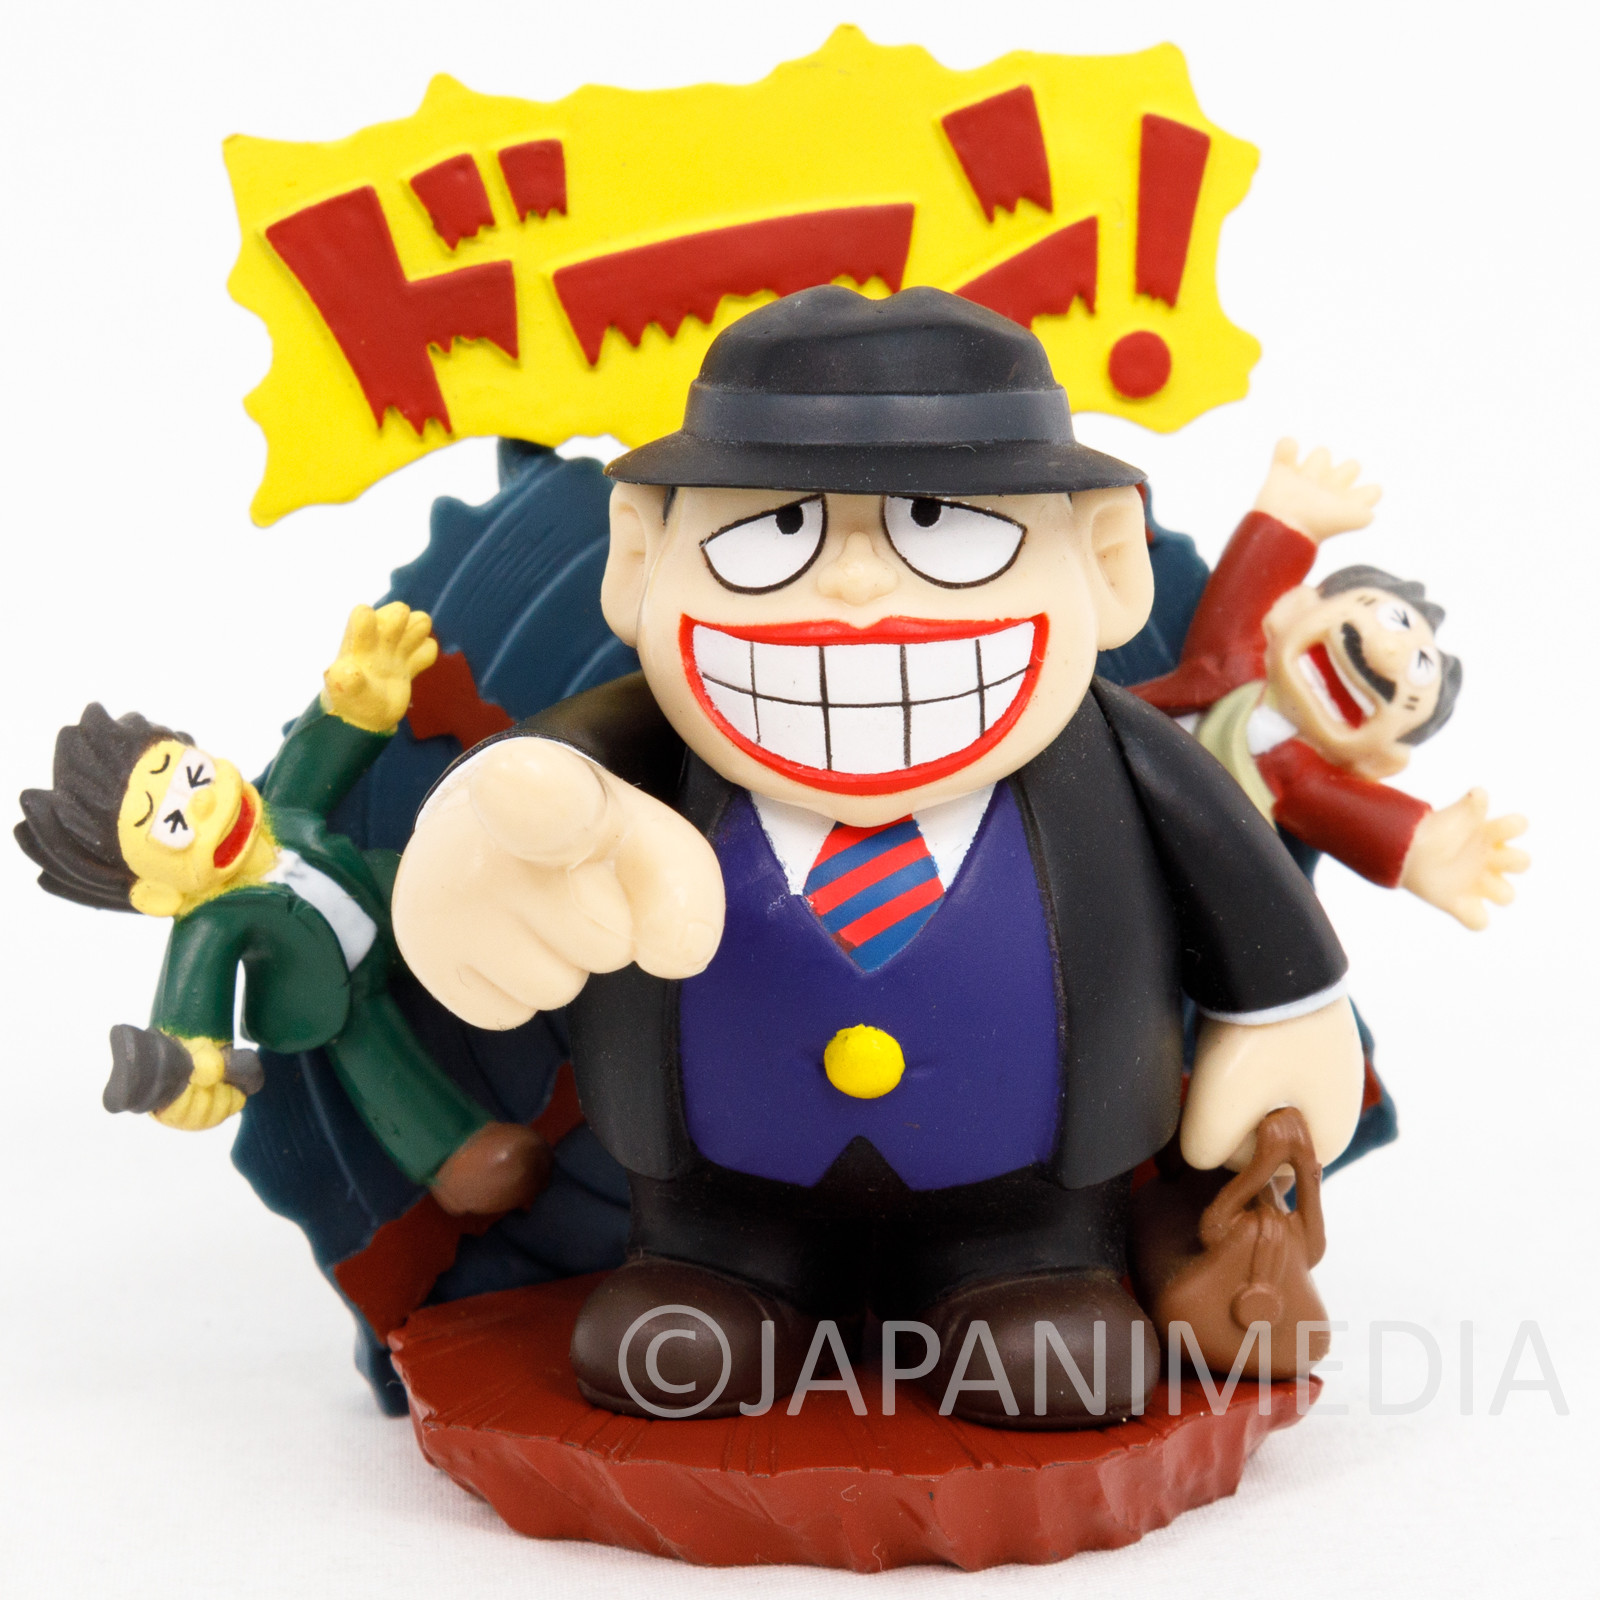 Warau Laughing Salesman Diorama Miniature Figure JAPAN ANIME 3